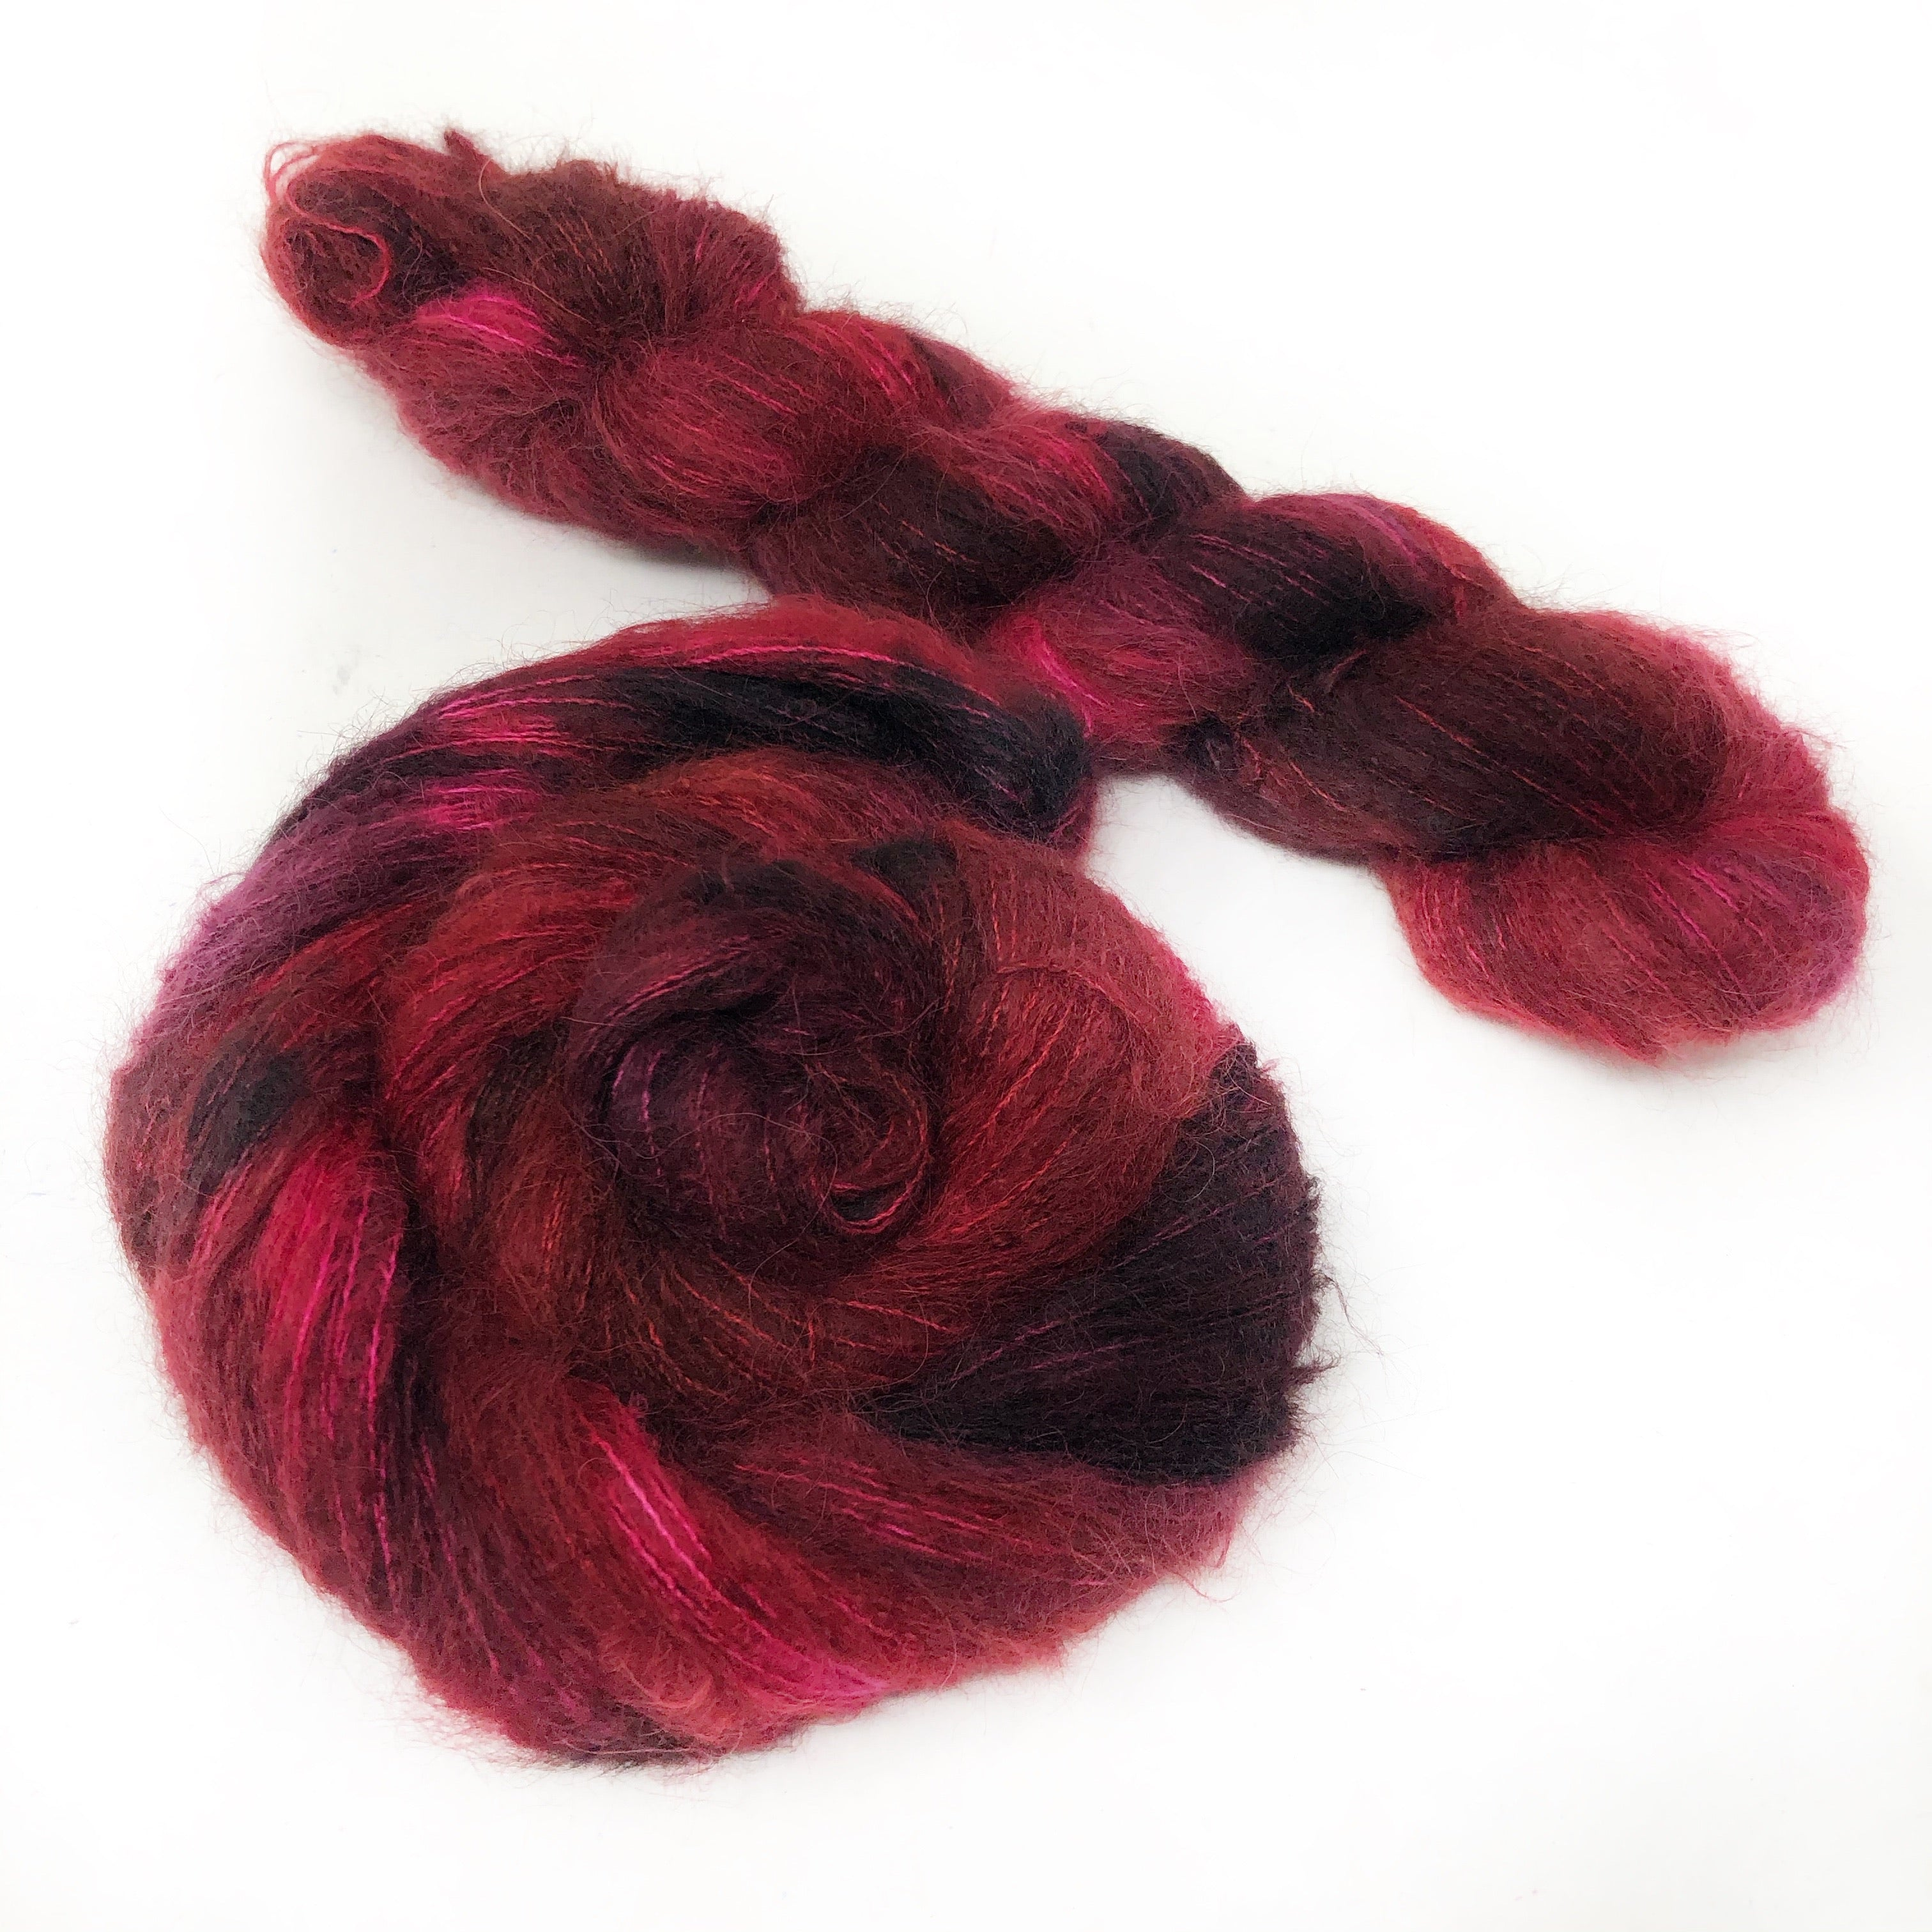 Cherry Cordial - Halo Silk Laceweight